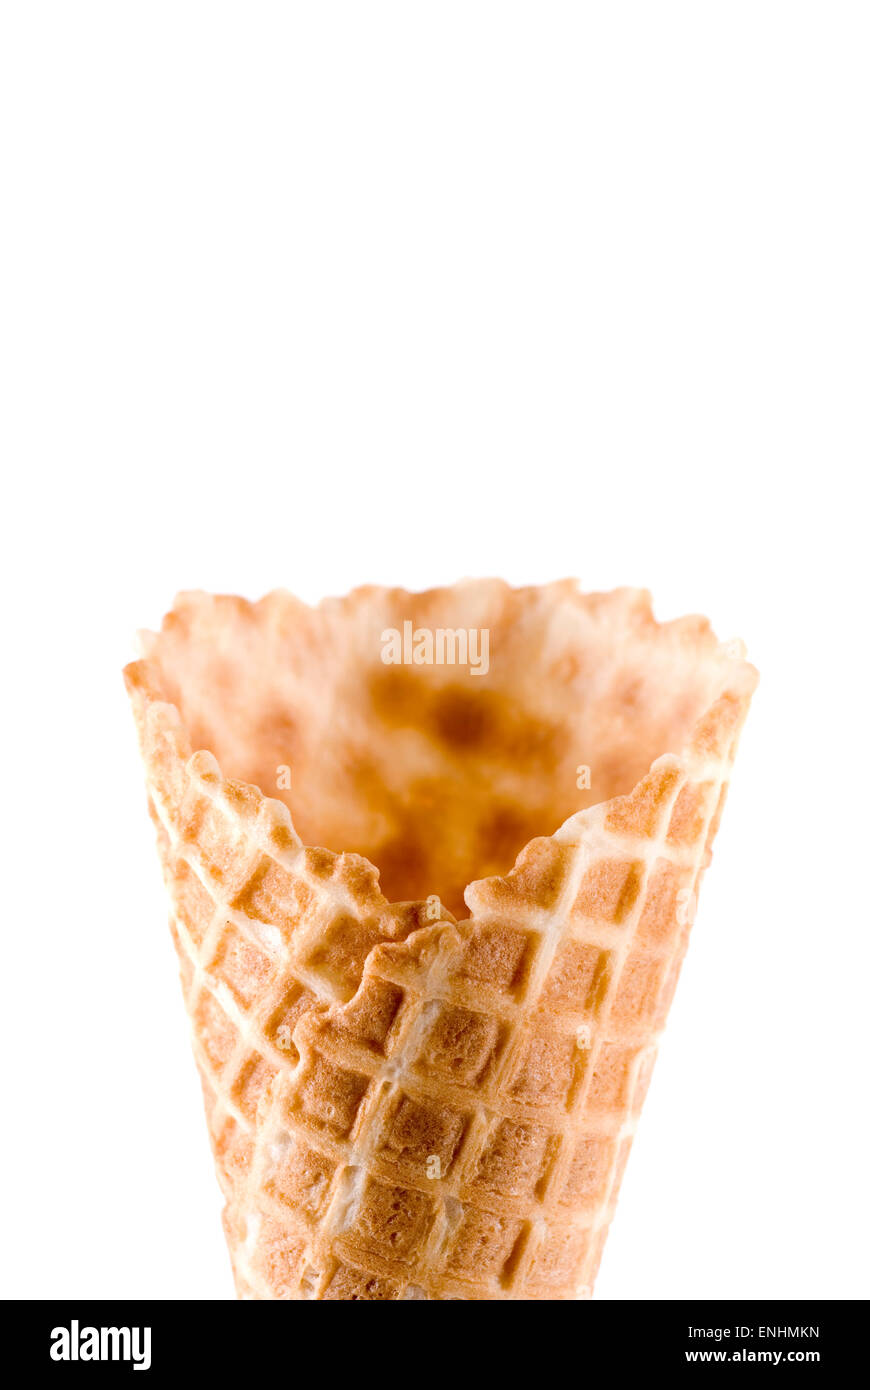 Empty ice cream waffle cone on white background. - Stock Image